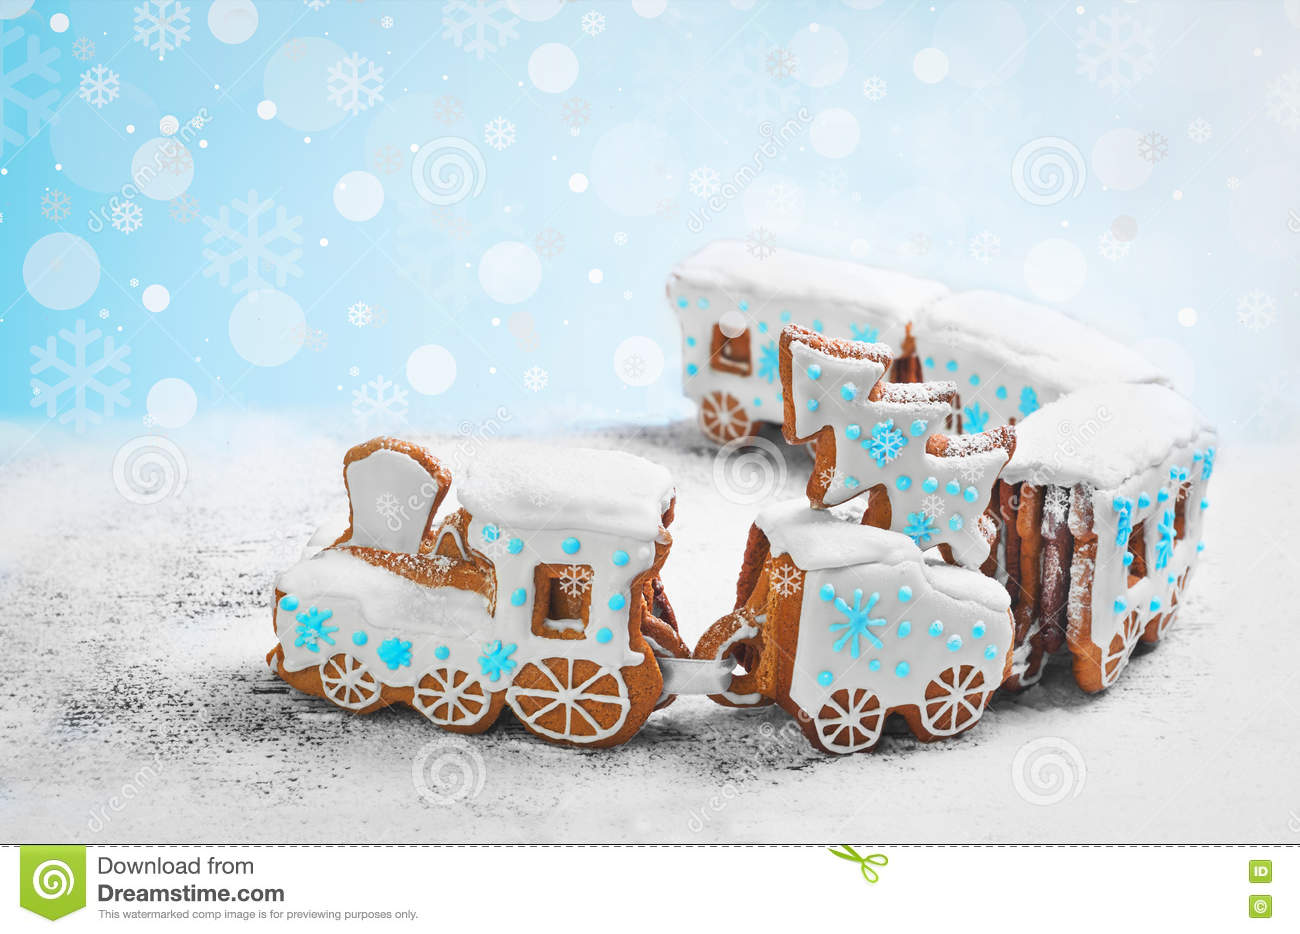 Coolmathgames Com Christmas Ornaments: Gingerbread Cookie In The Form A Christmas Train Stock